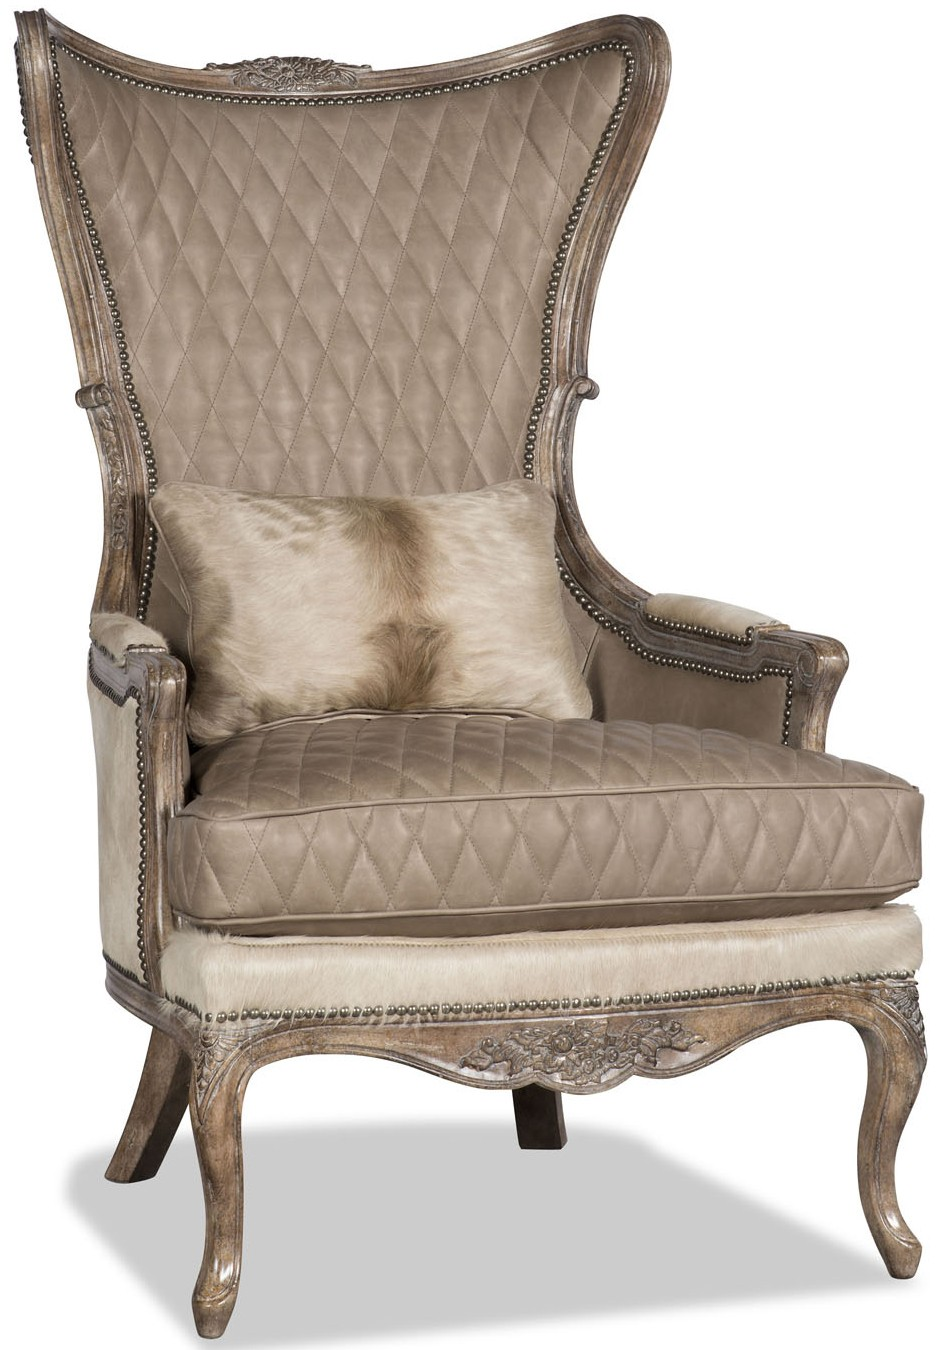 CHAIRS   Leather, Upholstered, Accent Quilted Leather And Animal Print  Armchair